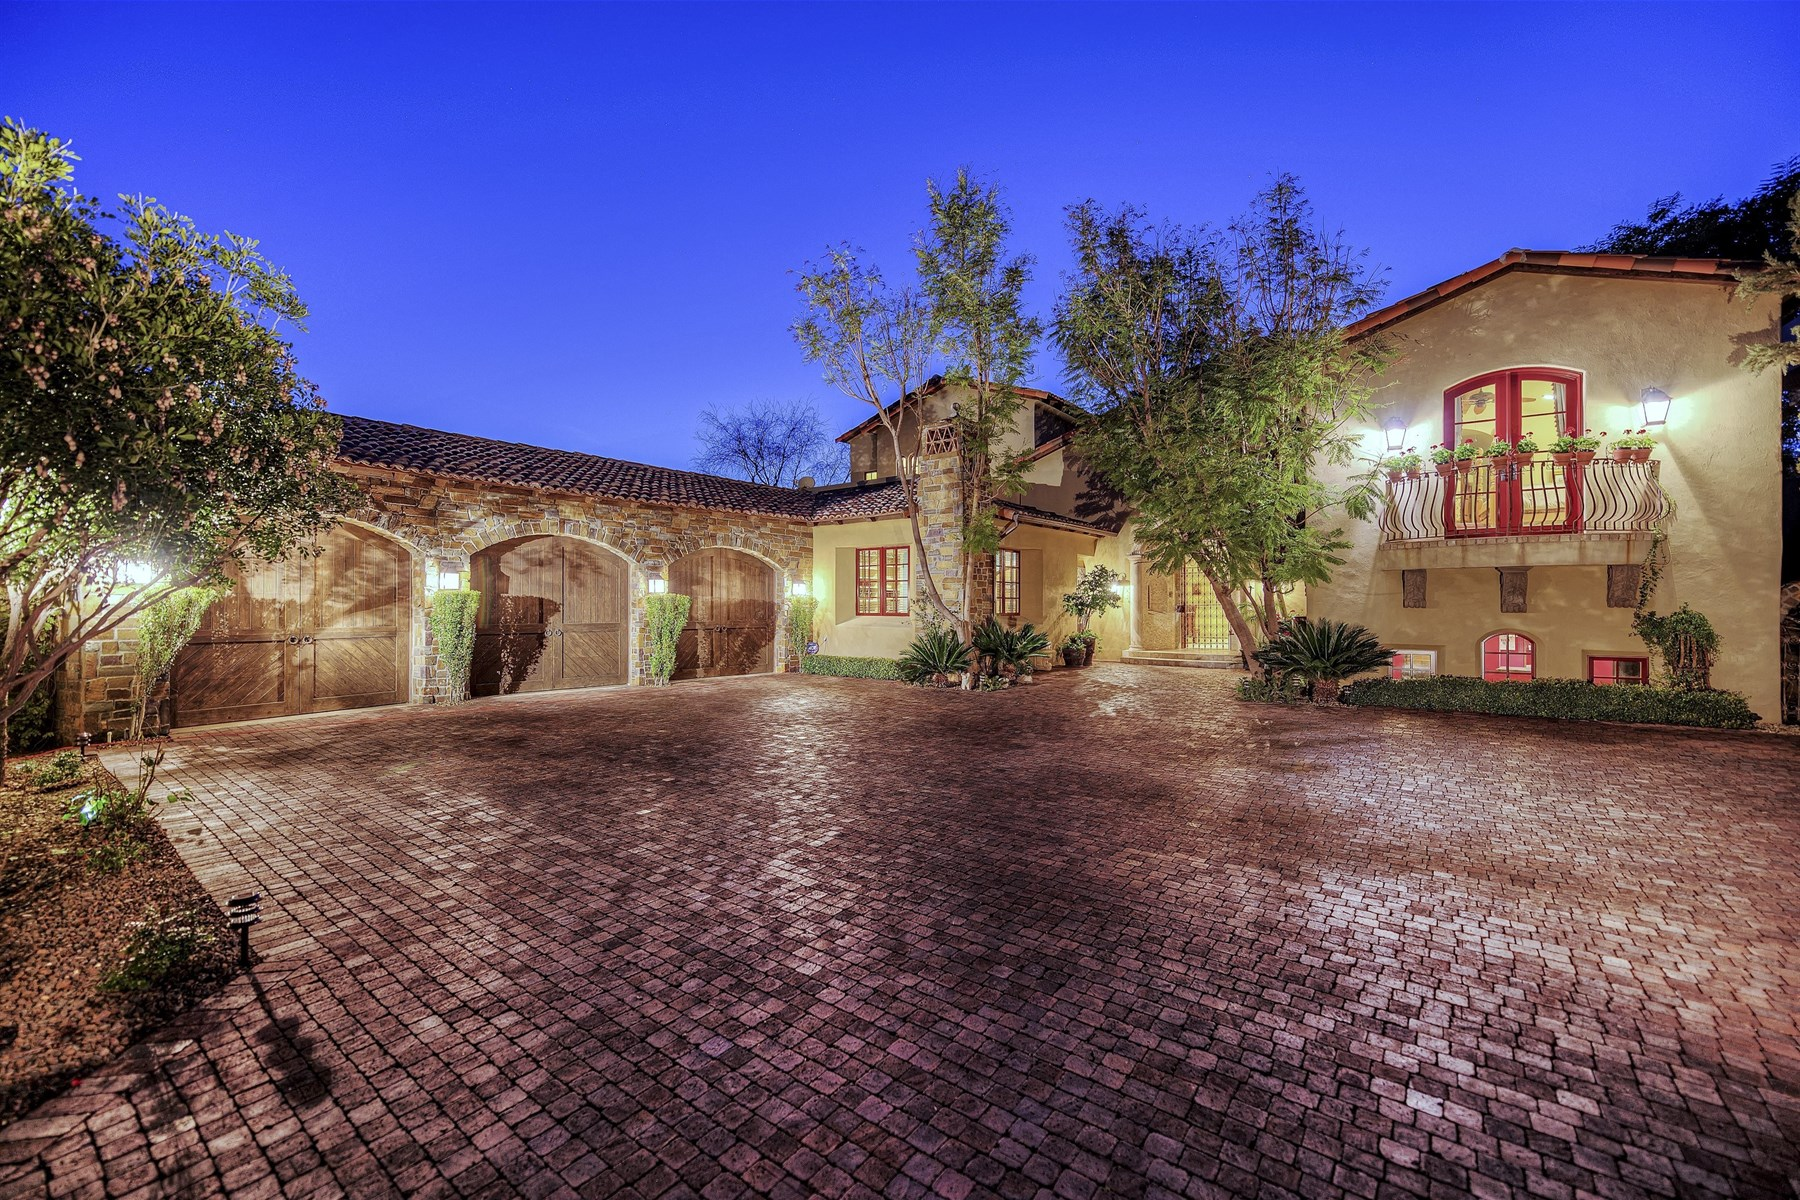 獨棟家庭住宅 為 出售 在 Romantic custom home on the golf course 5968 E Orange Blossom Ln Phoenix, 亞利桑那州, 85018 美國